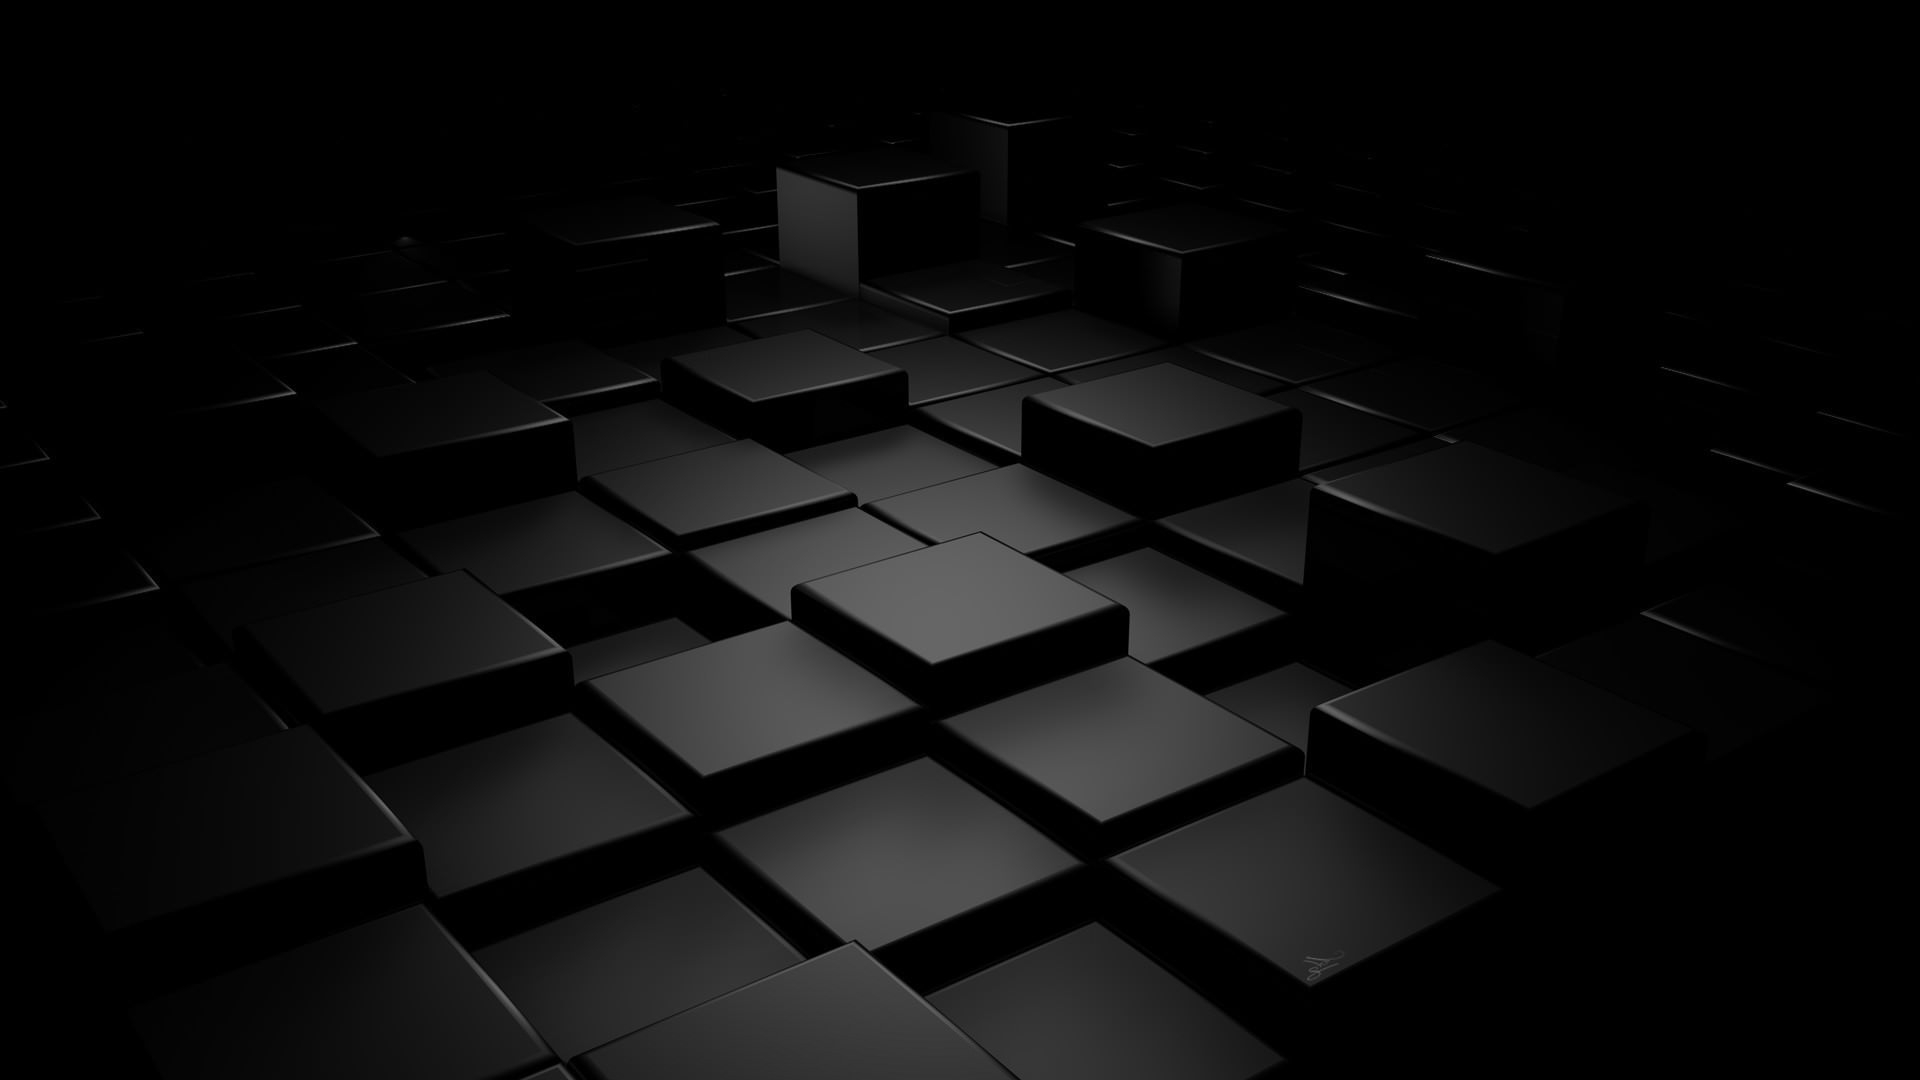 Plain Black Cubes Background